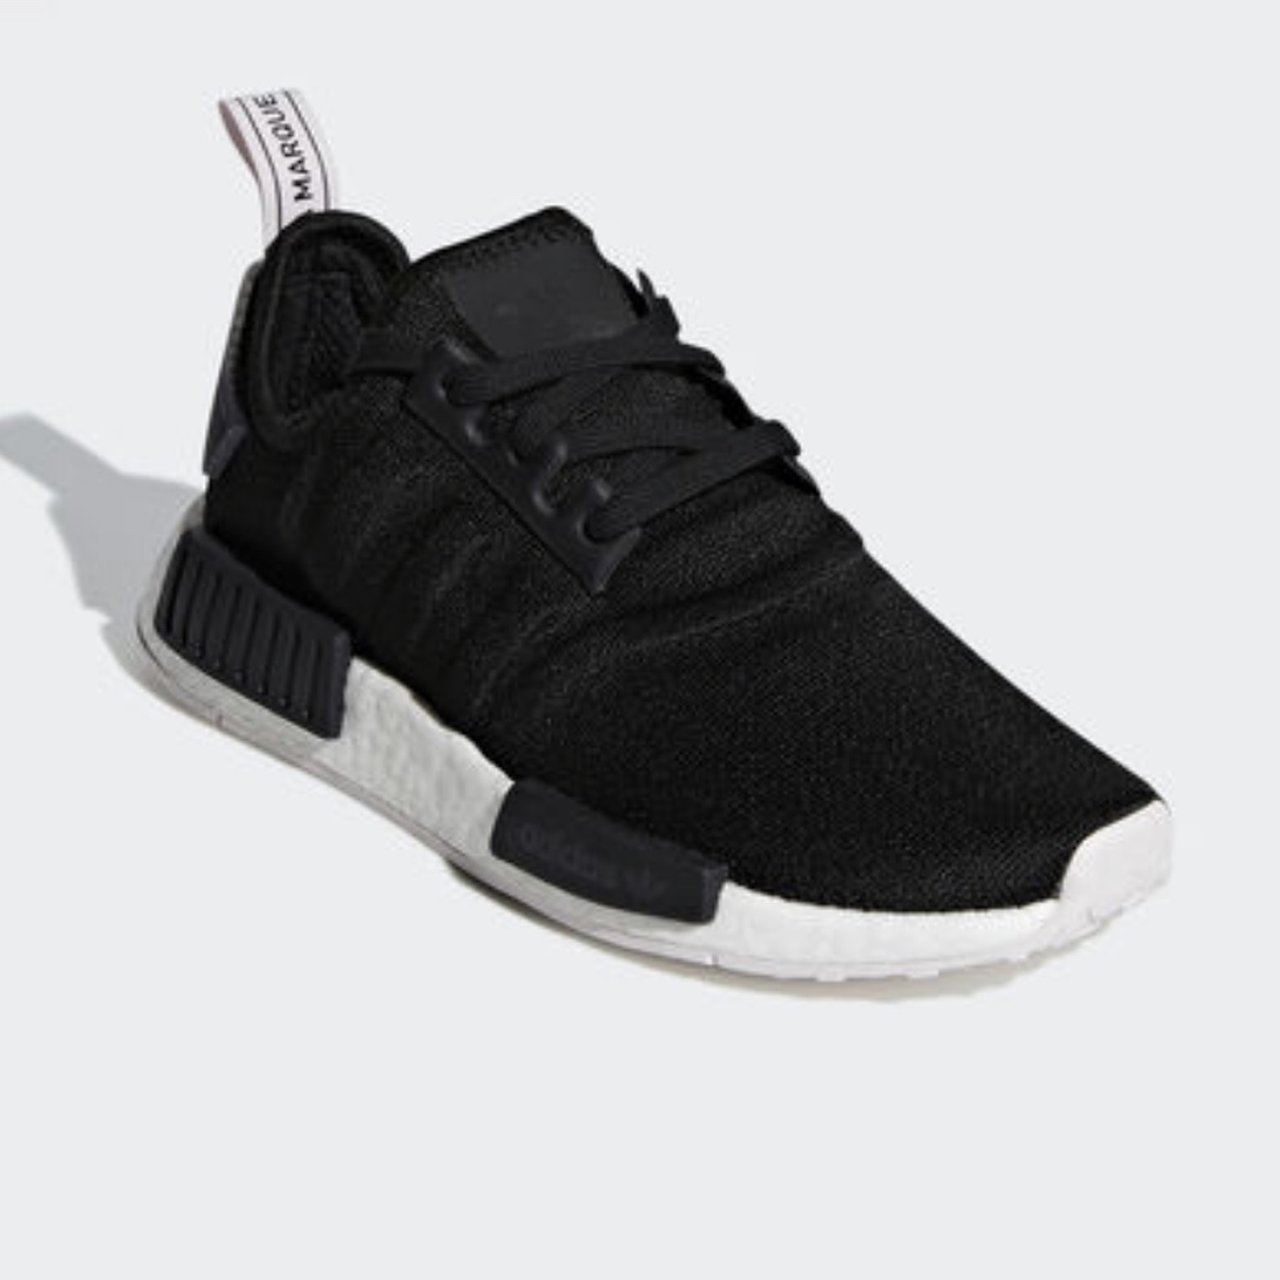 a5132aa6ceeaf Adidas NMD R1 Womens size 8 Core black  Core black  Orchid - Depop